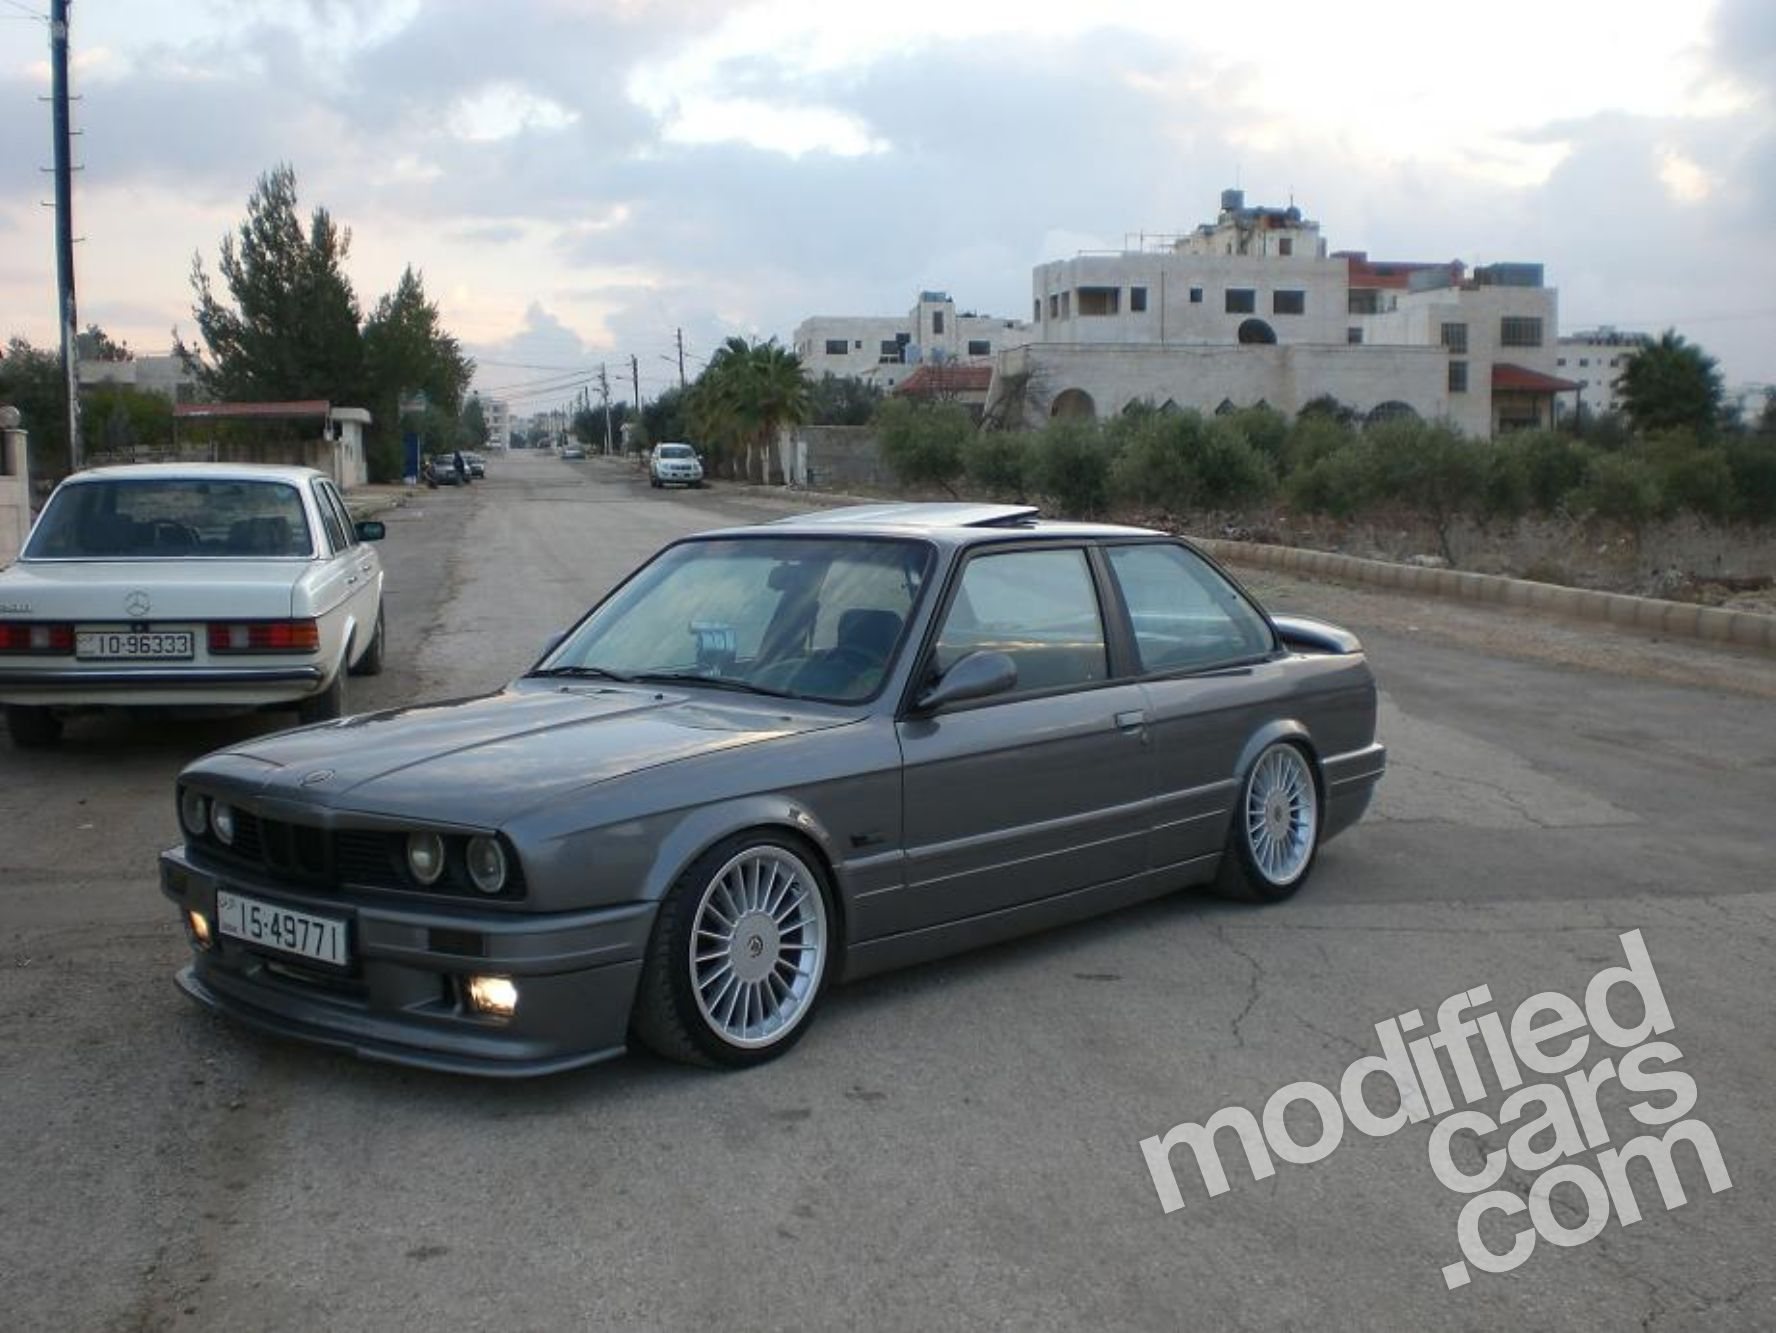 modded bmw e30 320i hails from jordan autoevolution. Black Bedroom Furniture Sets. Home Design Ideas